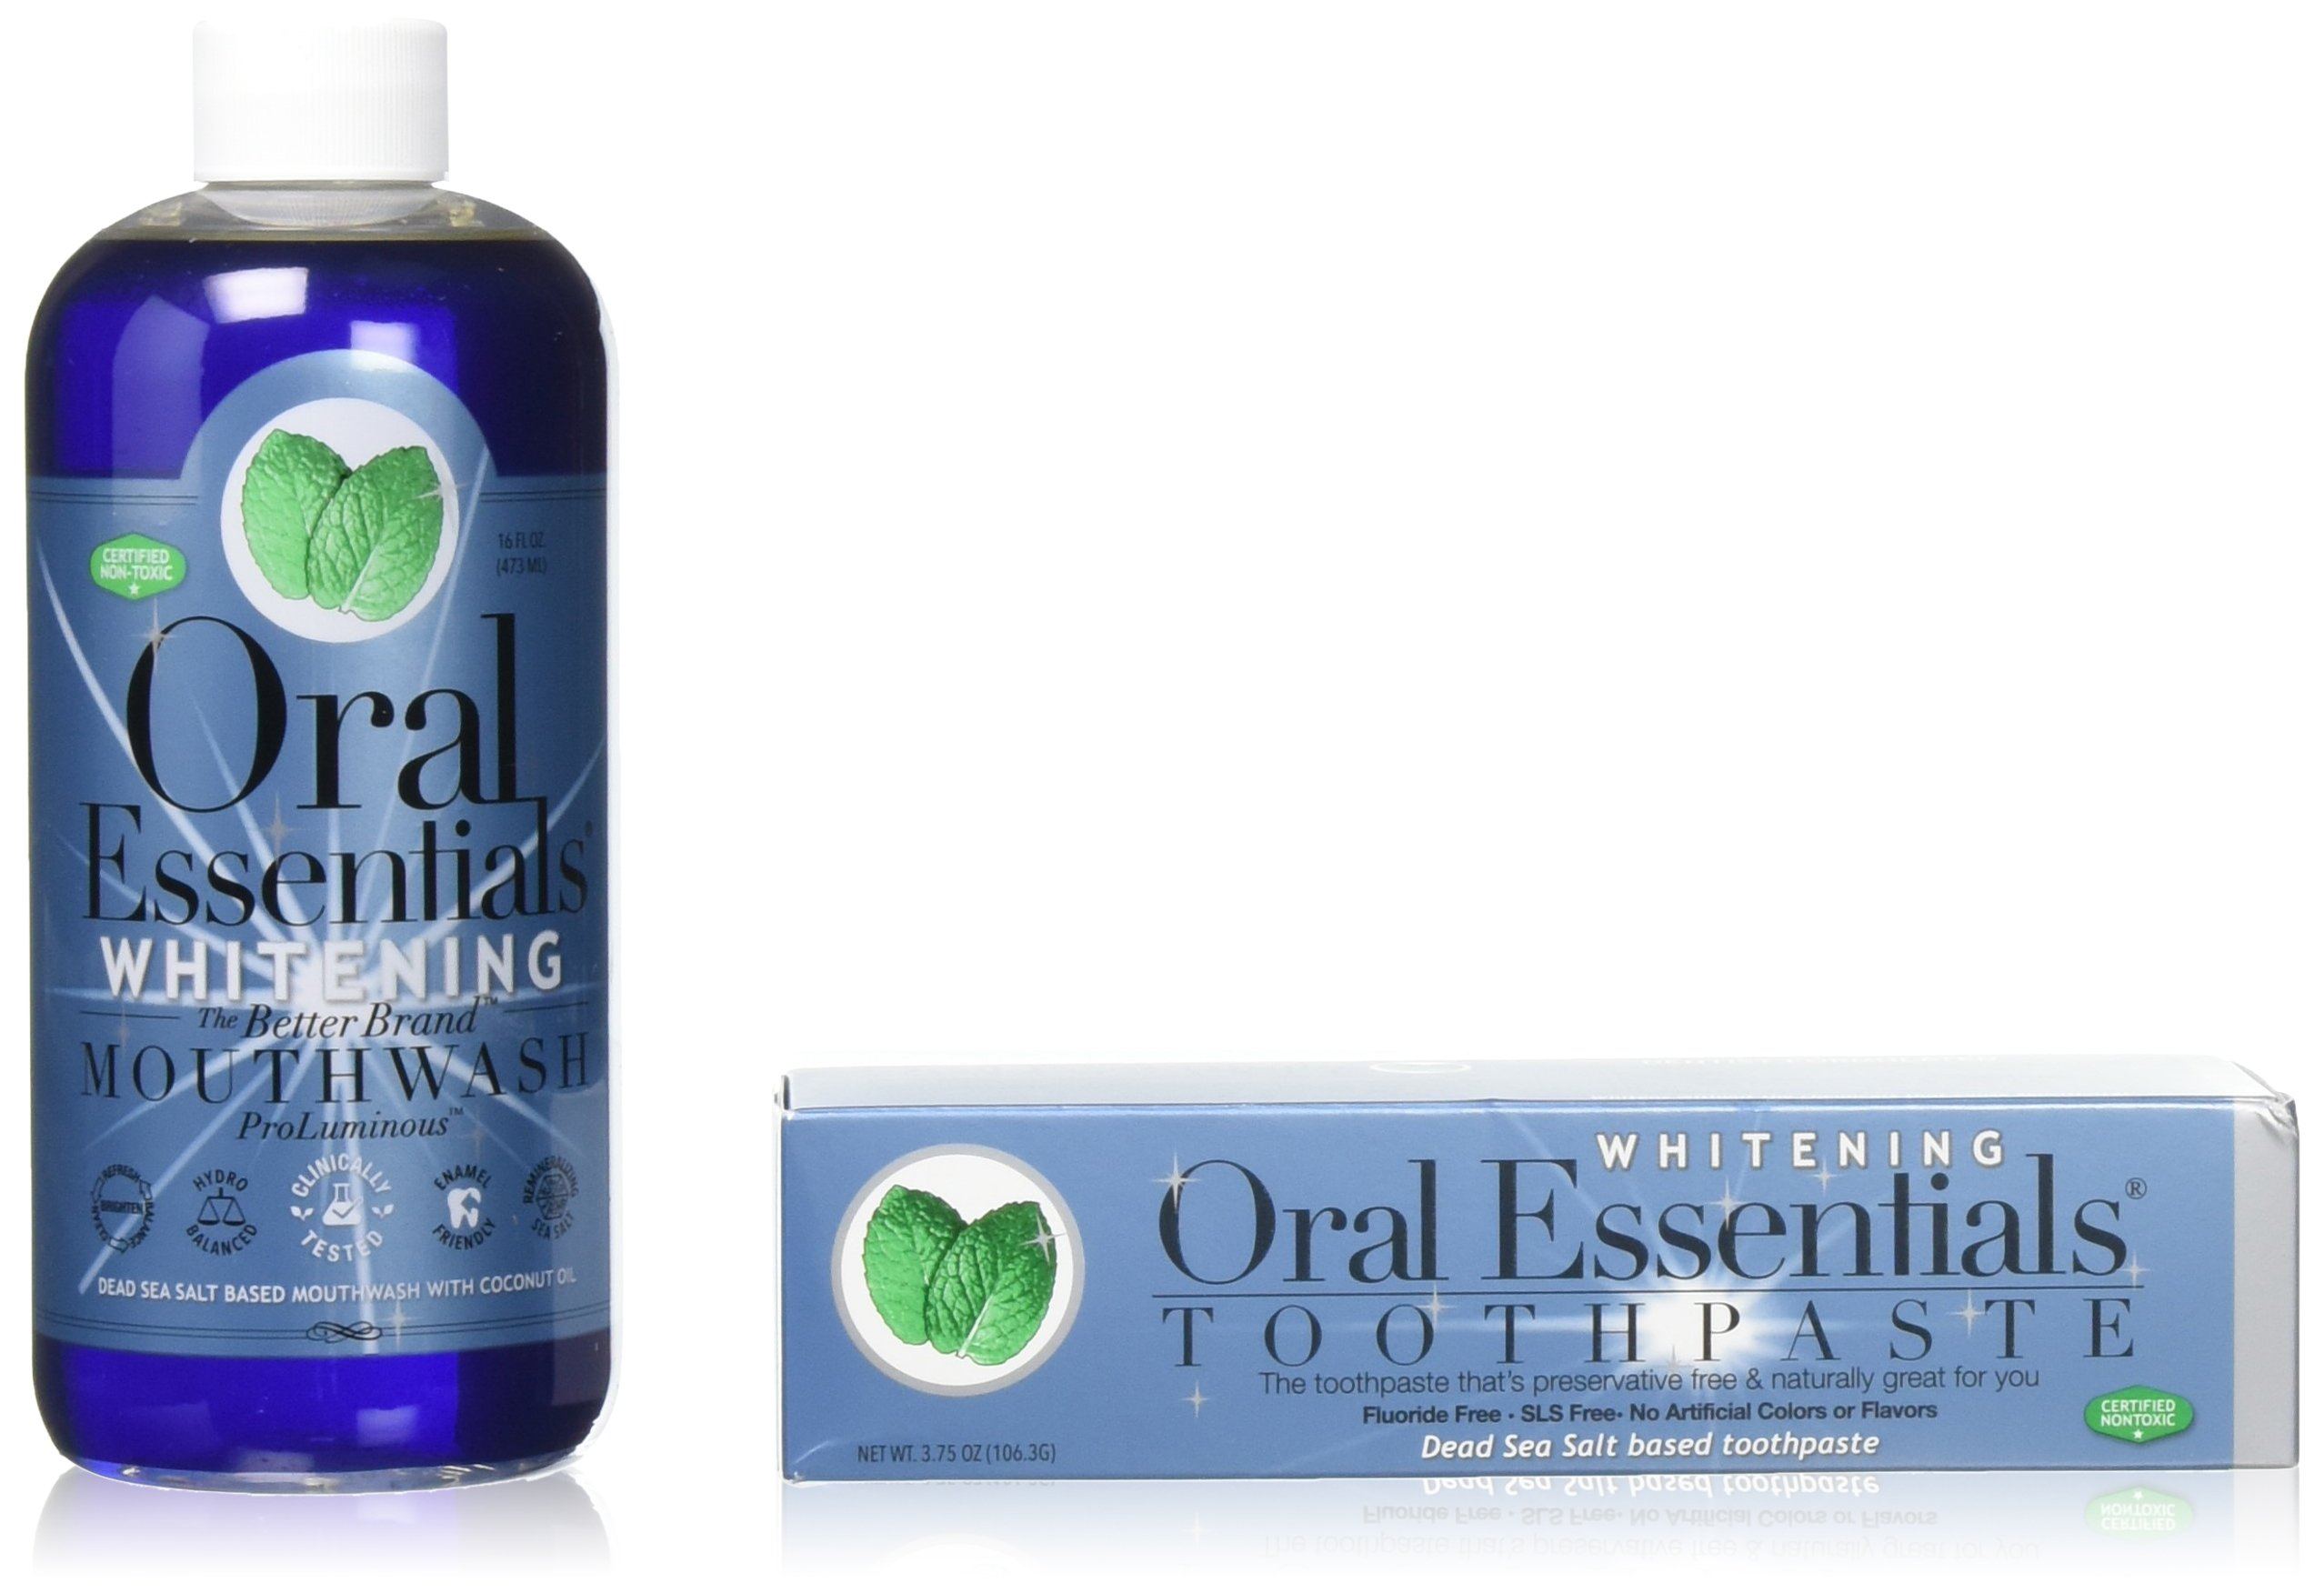 Oral Essentials Teeth Whitening Mouthwash (16 Oz) & Toothpaste (3.5 Oz) Combo